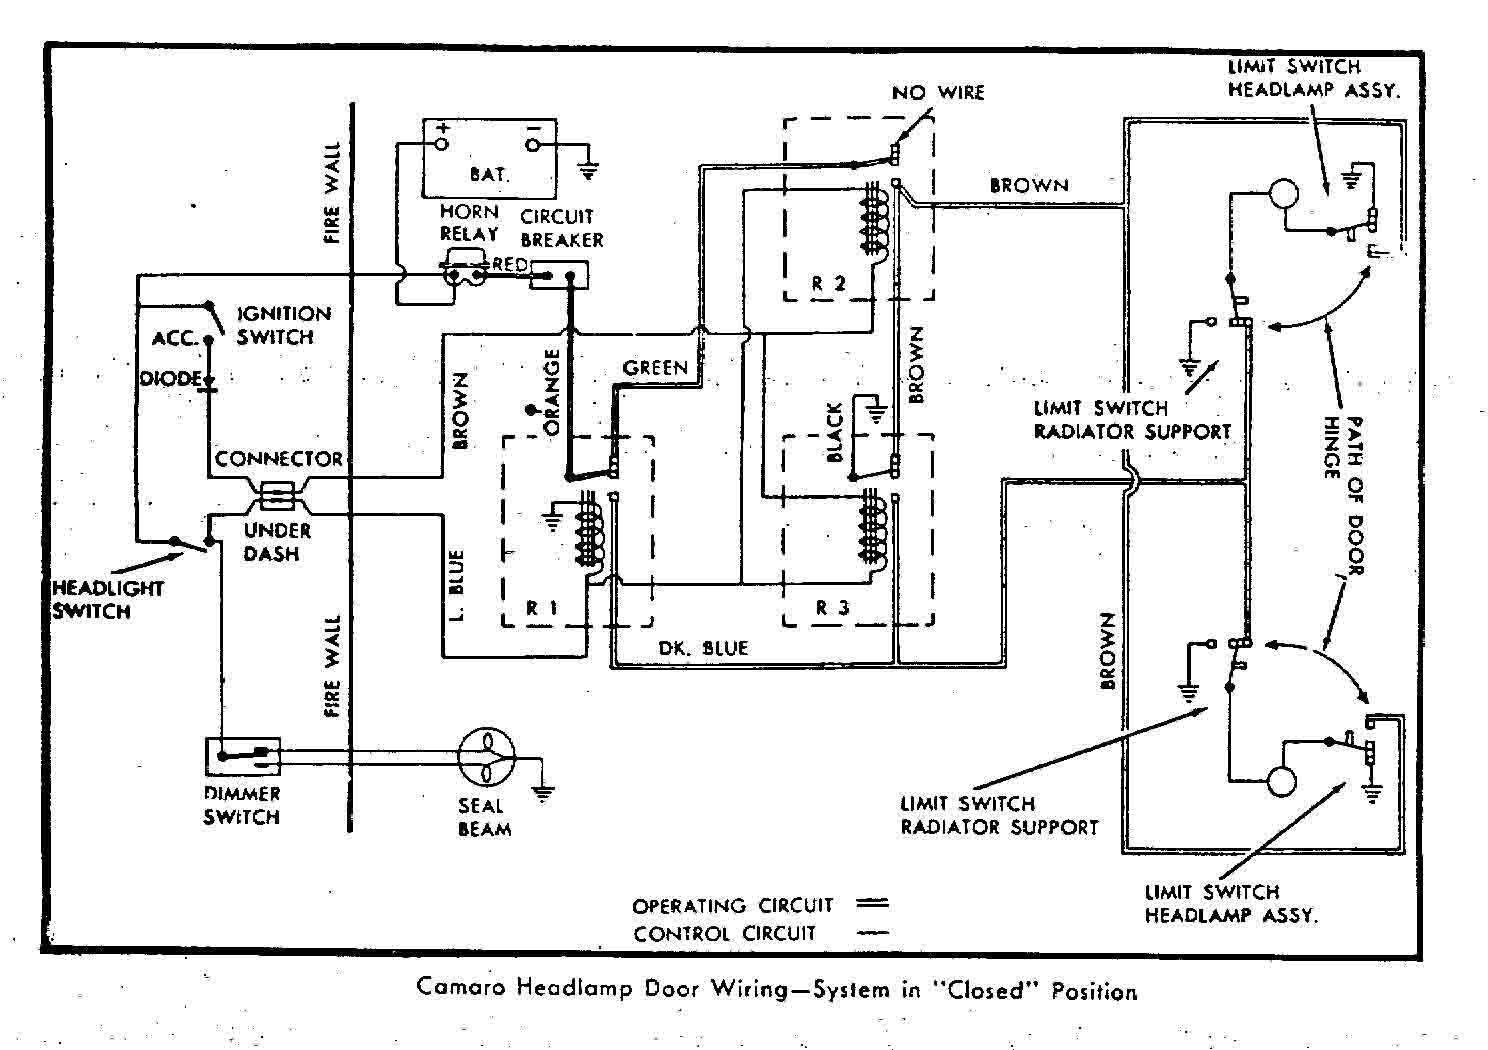 1968 camaro headlamp wiring diagram wiring diagram source 67 camaro tachometer wiring diagram 1967 camaro wiring [ 1488 x 1050 Pixel ]